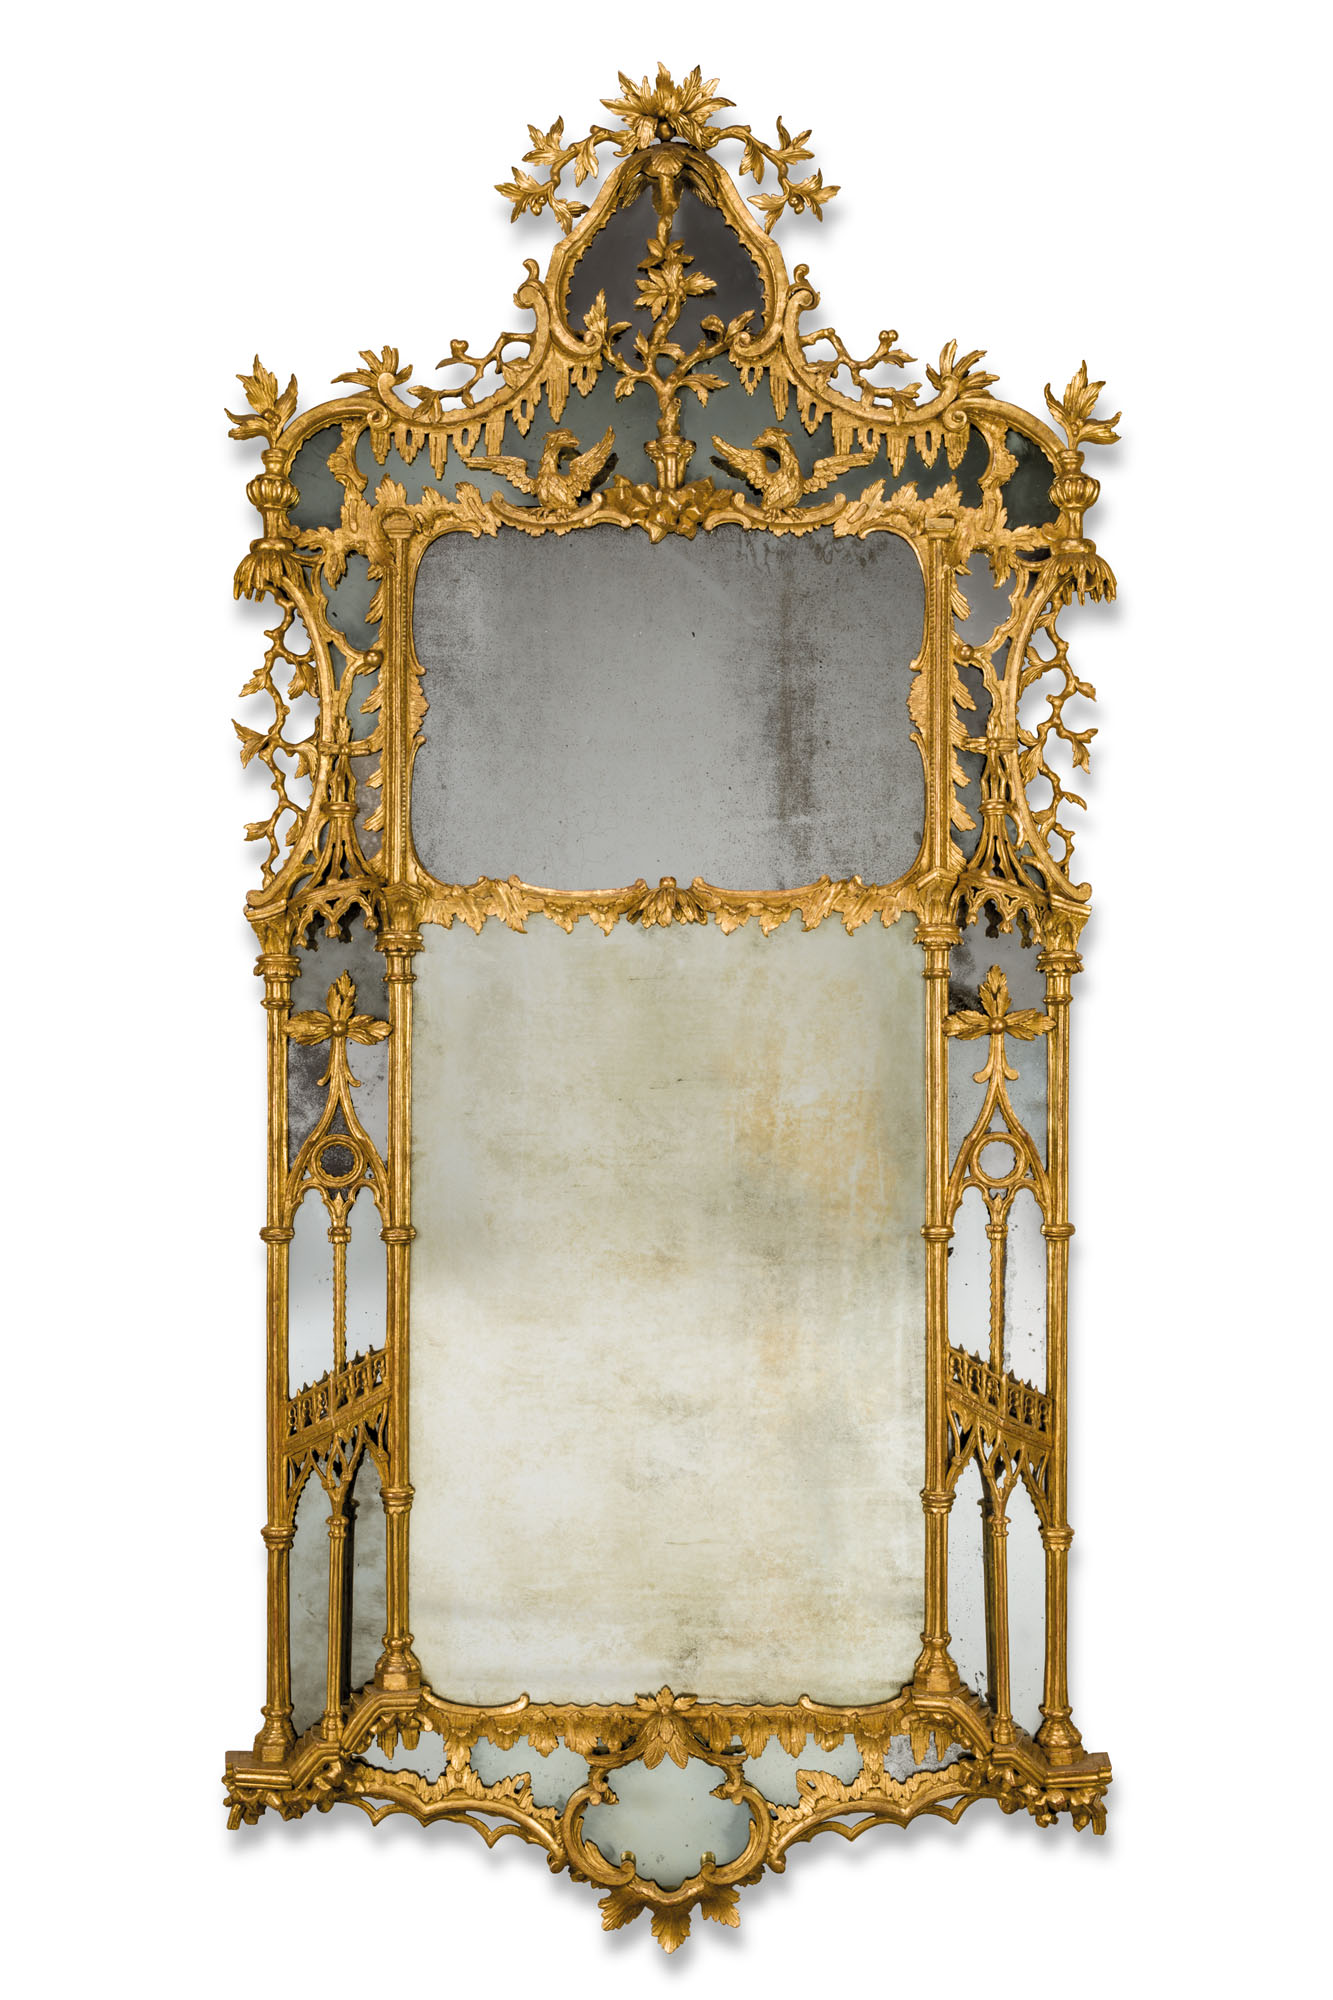 A George III giltwood pier mirror, circa 1765. 94 x 44 in (239 x 112 cm). Estimate £20,000-30,000. Offered in Apter-Fredericks 75 Years of Important English Furniture on 19 January at Christie's in London